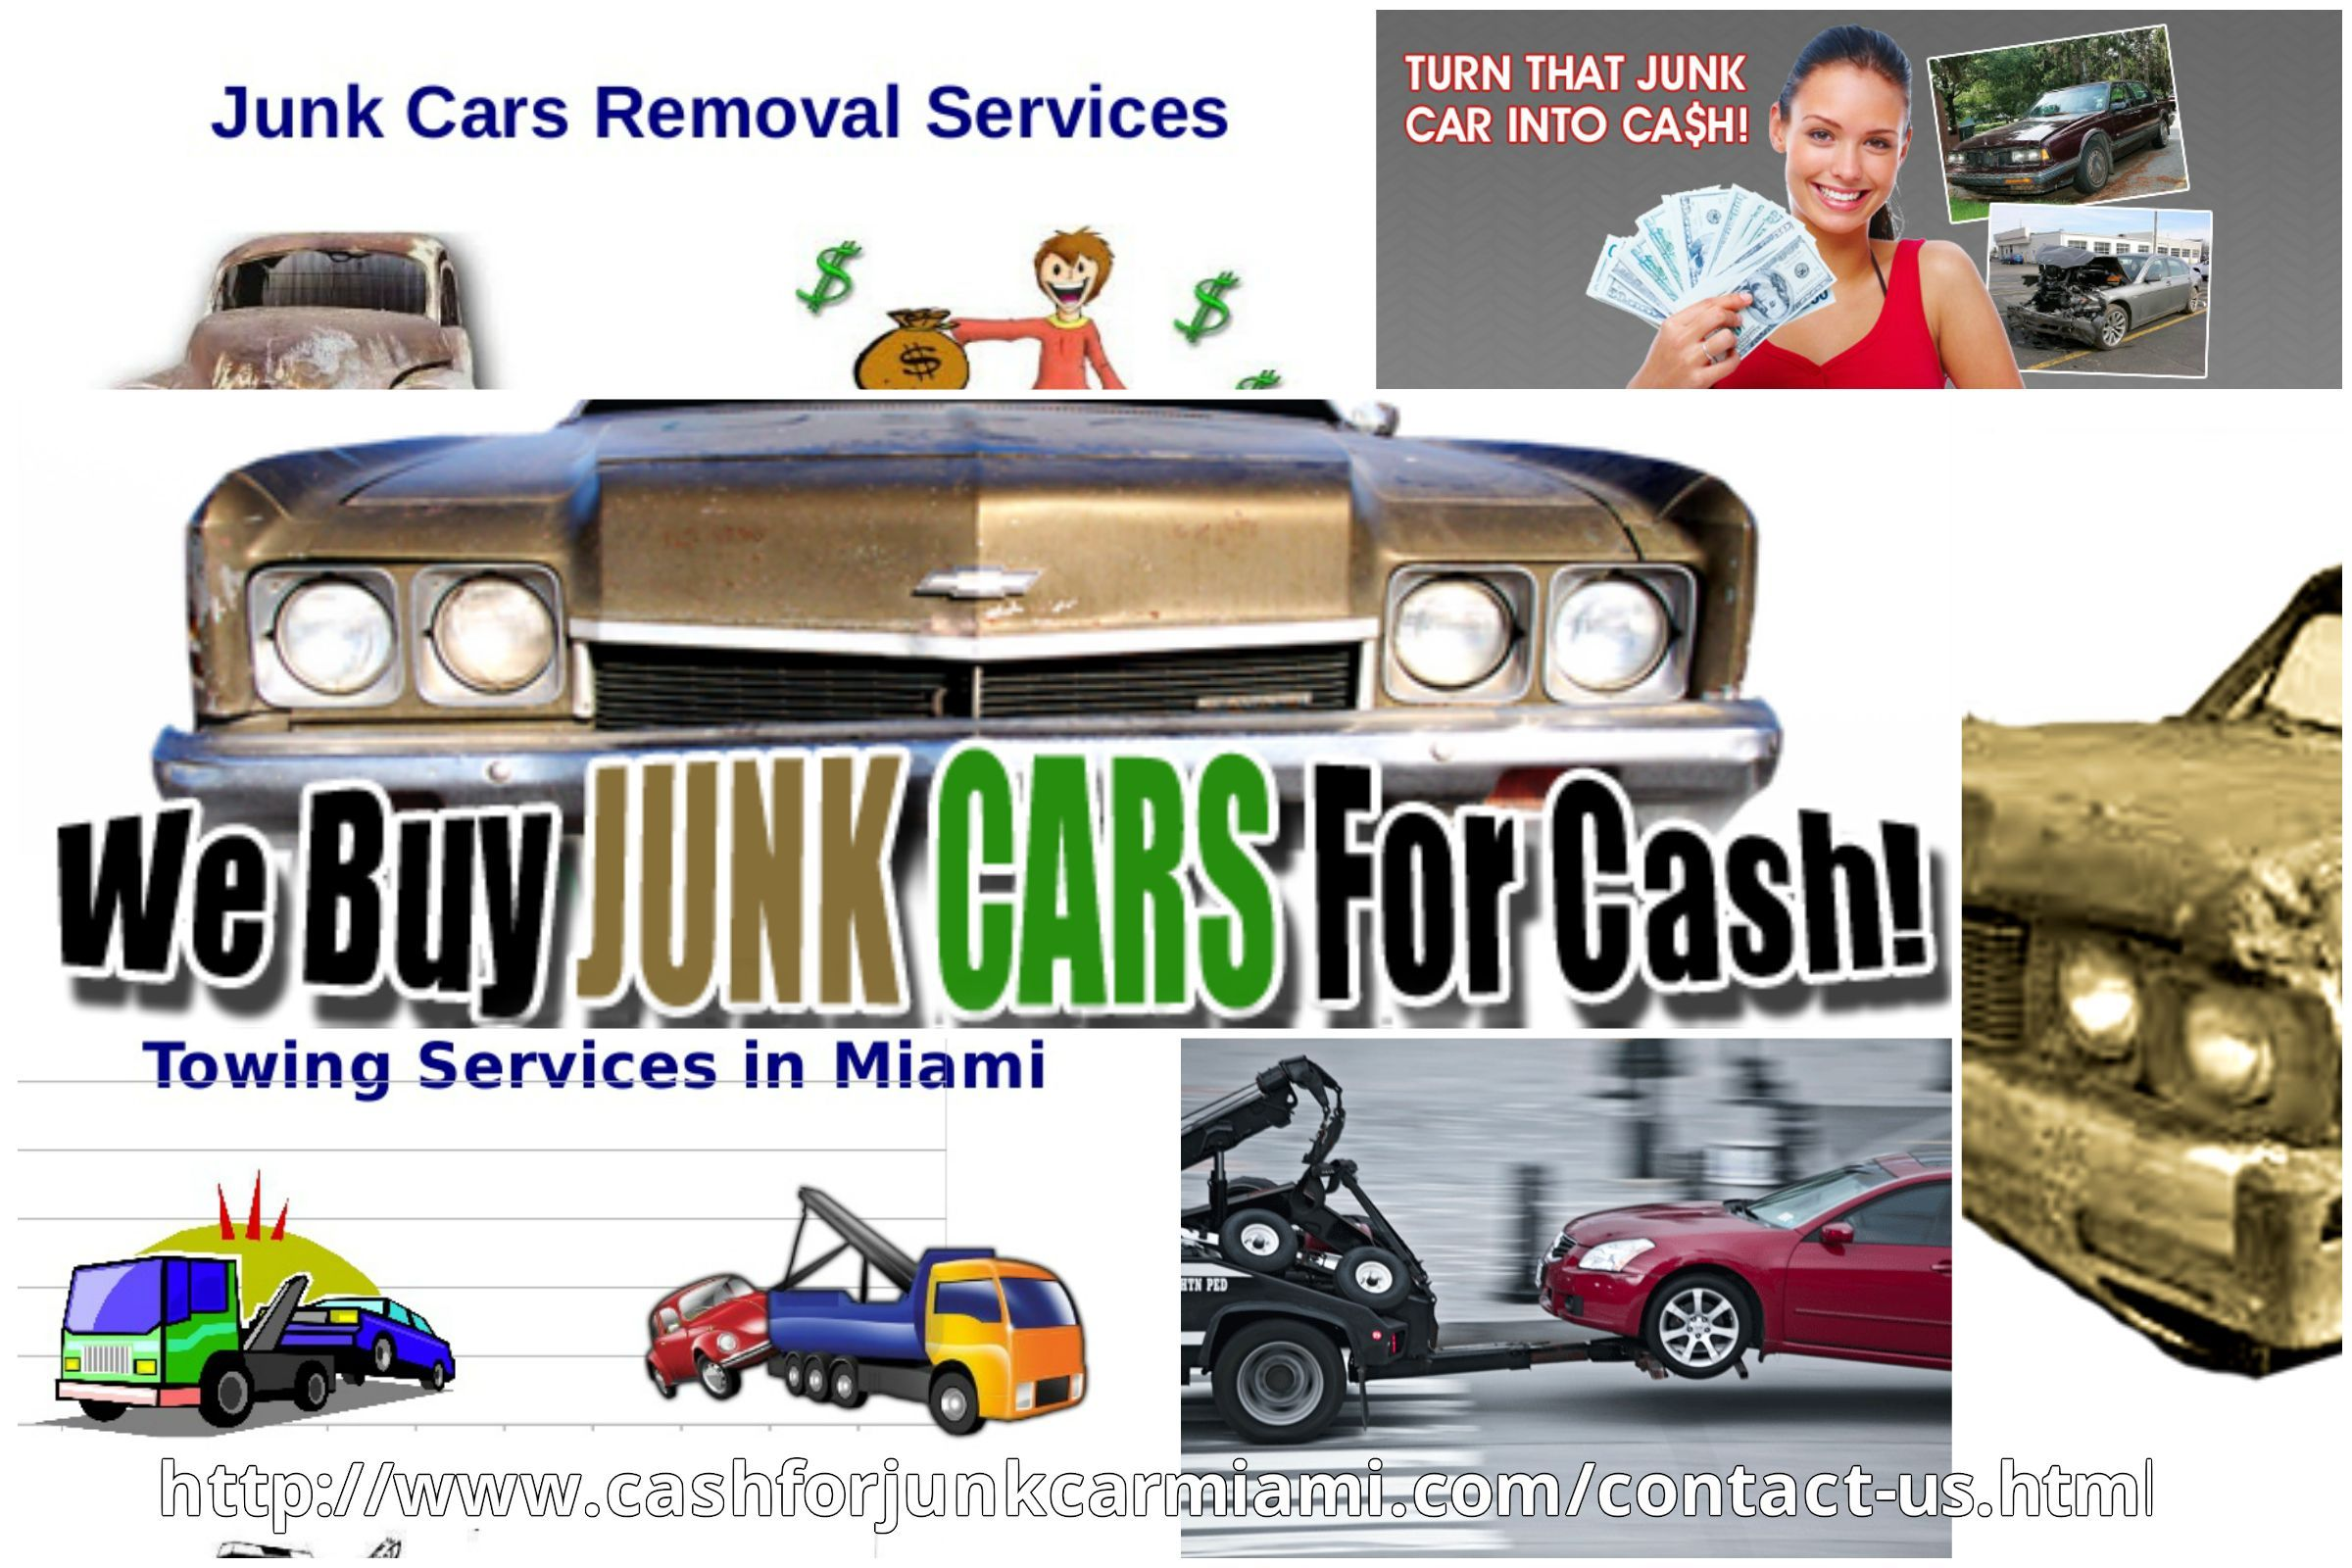 http://www.cashforjunkcarmiami.com/contact-us.html Cash for junk car ...